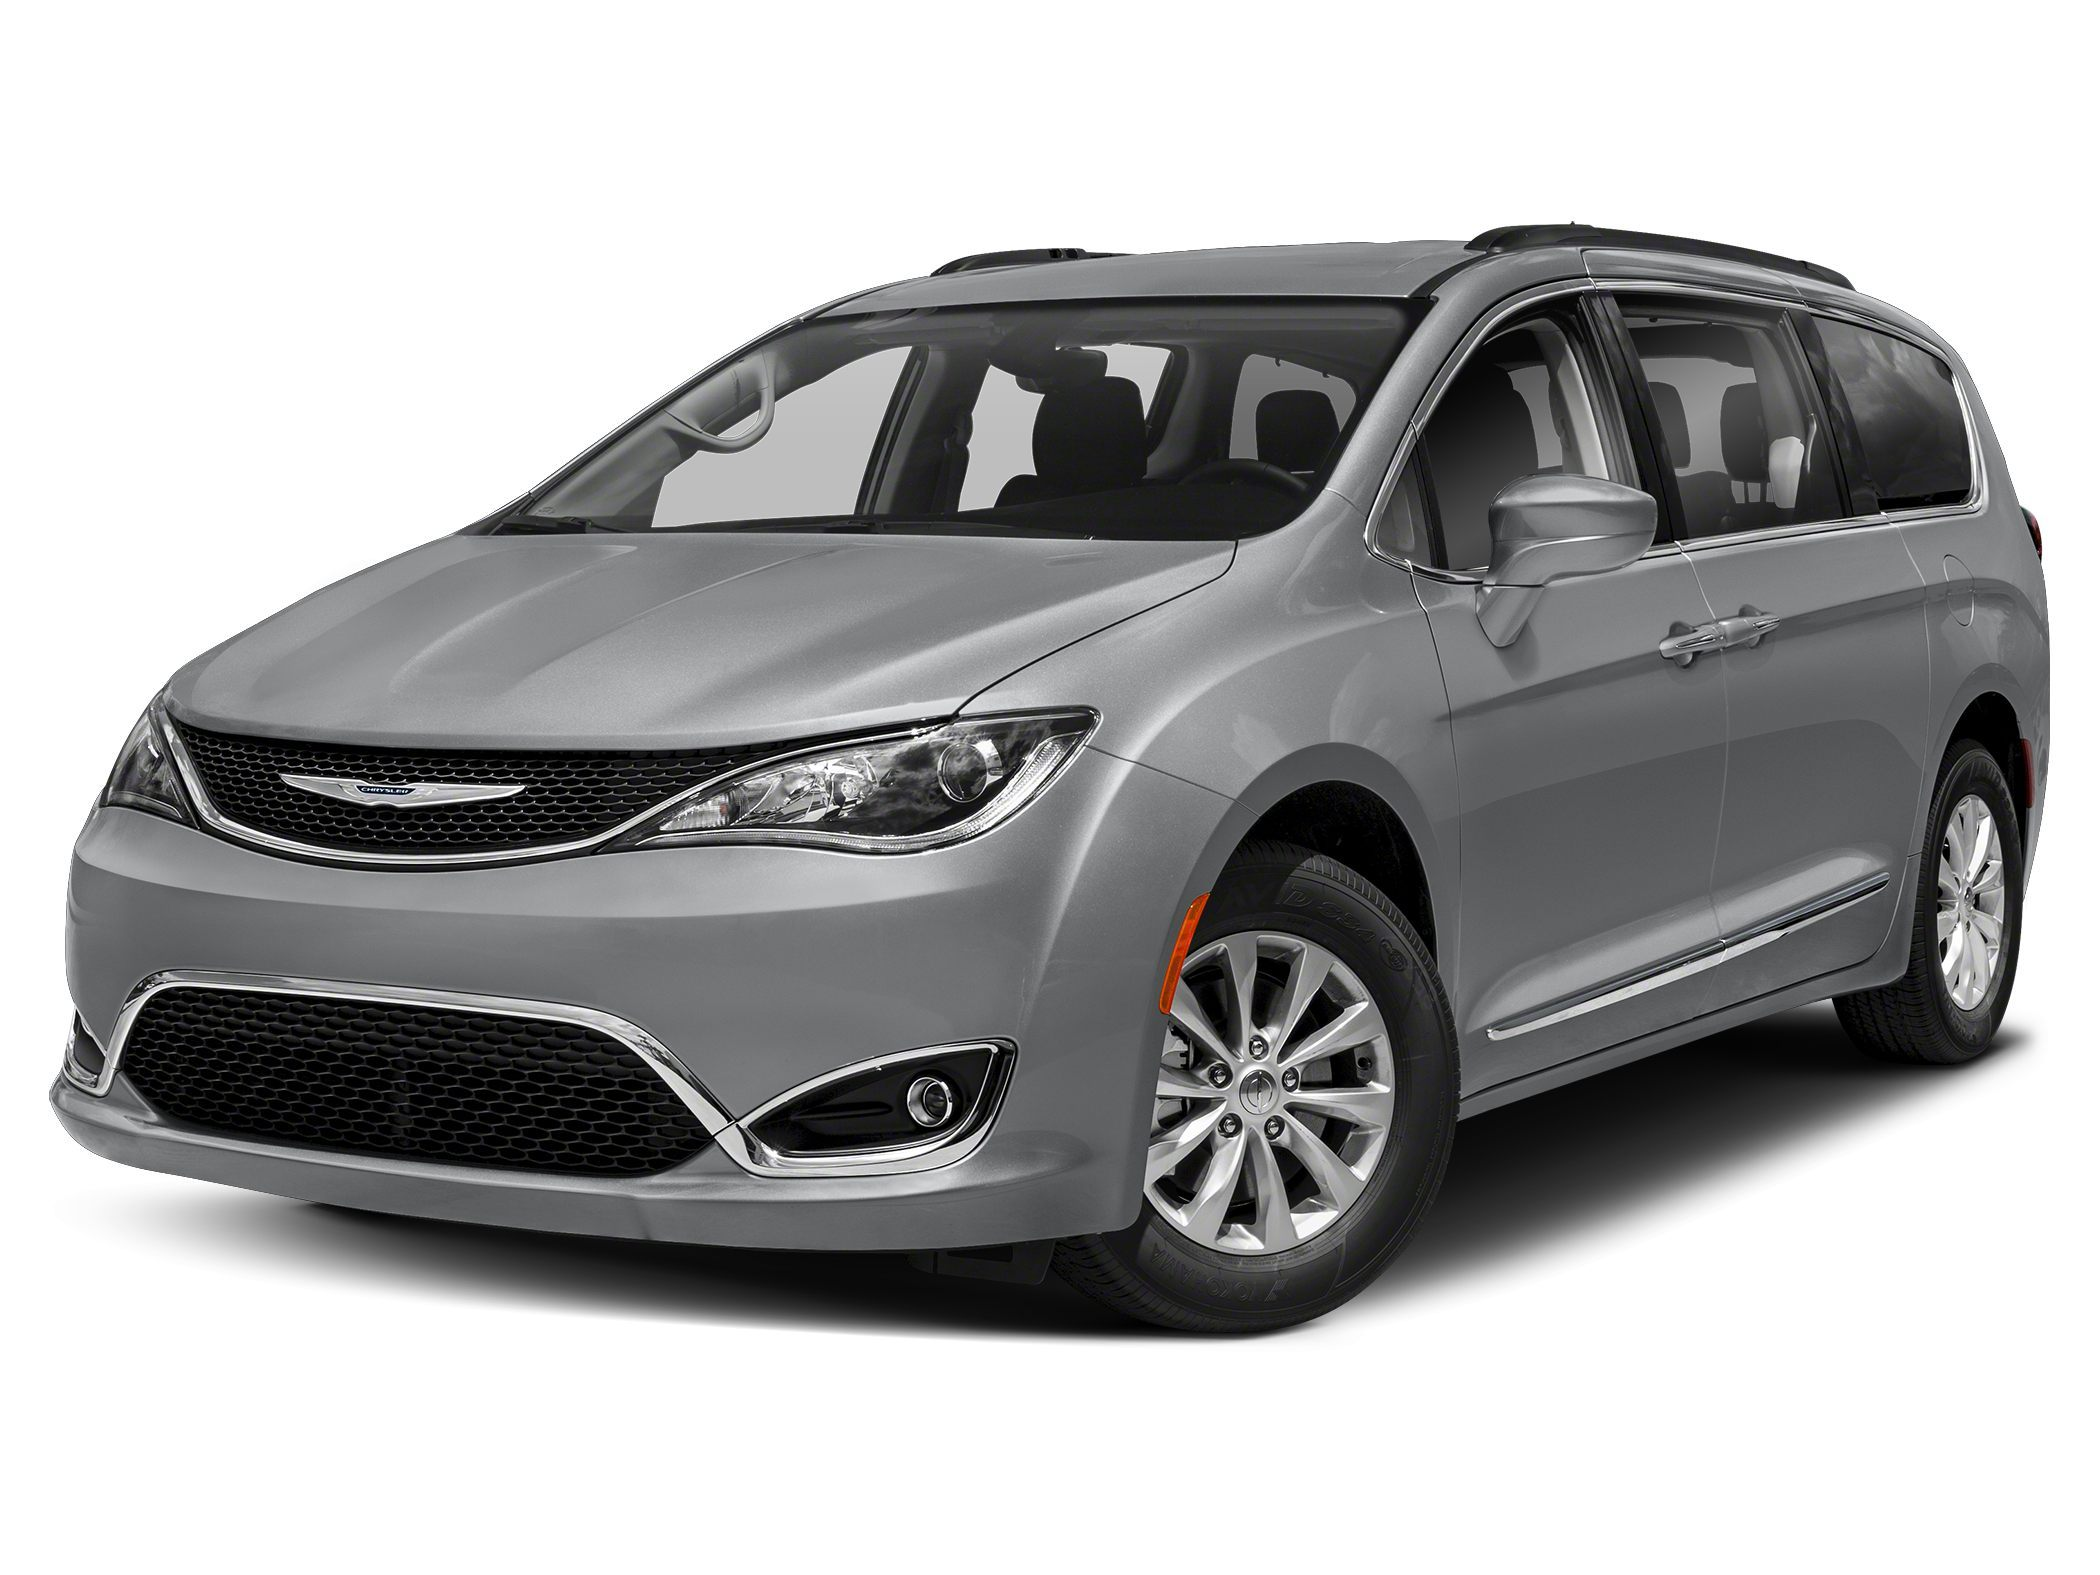 2020 Chrysler Pacifica Mini-Van